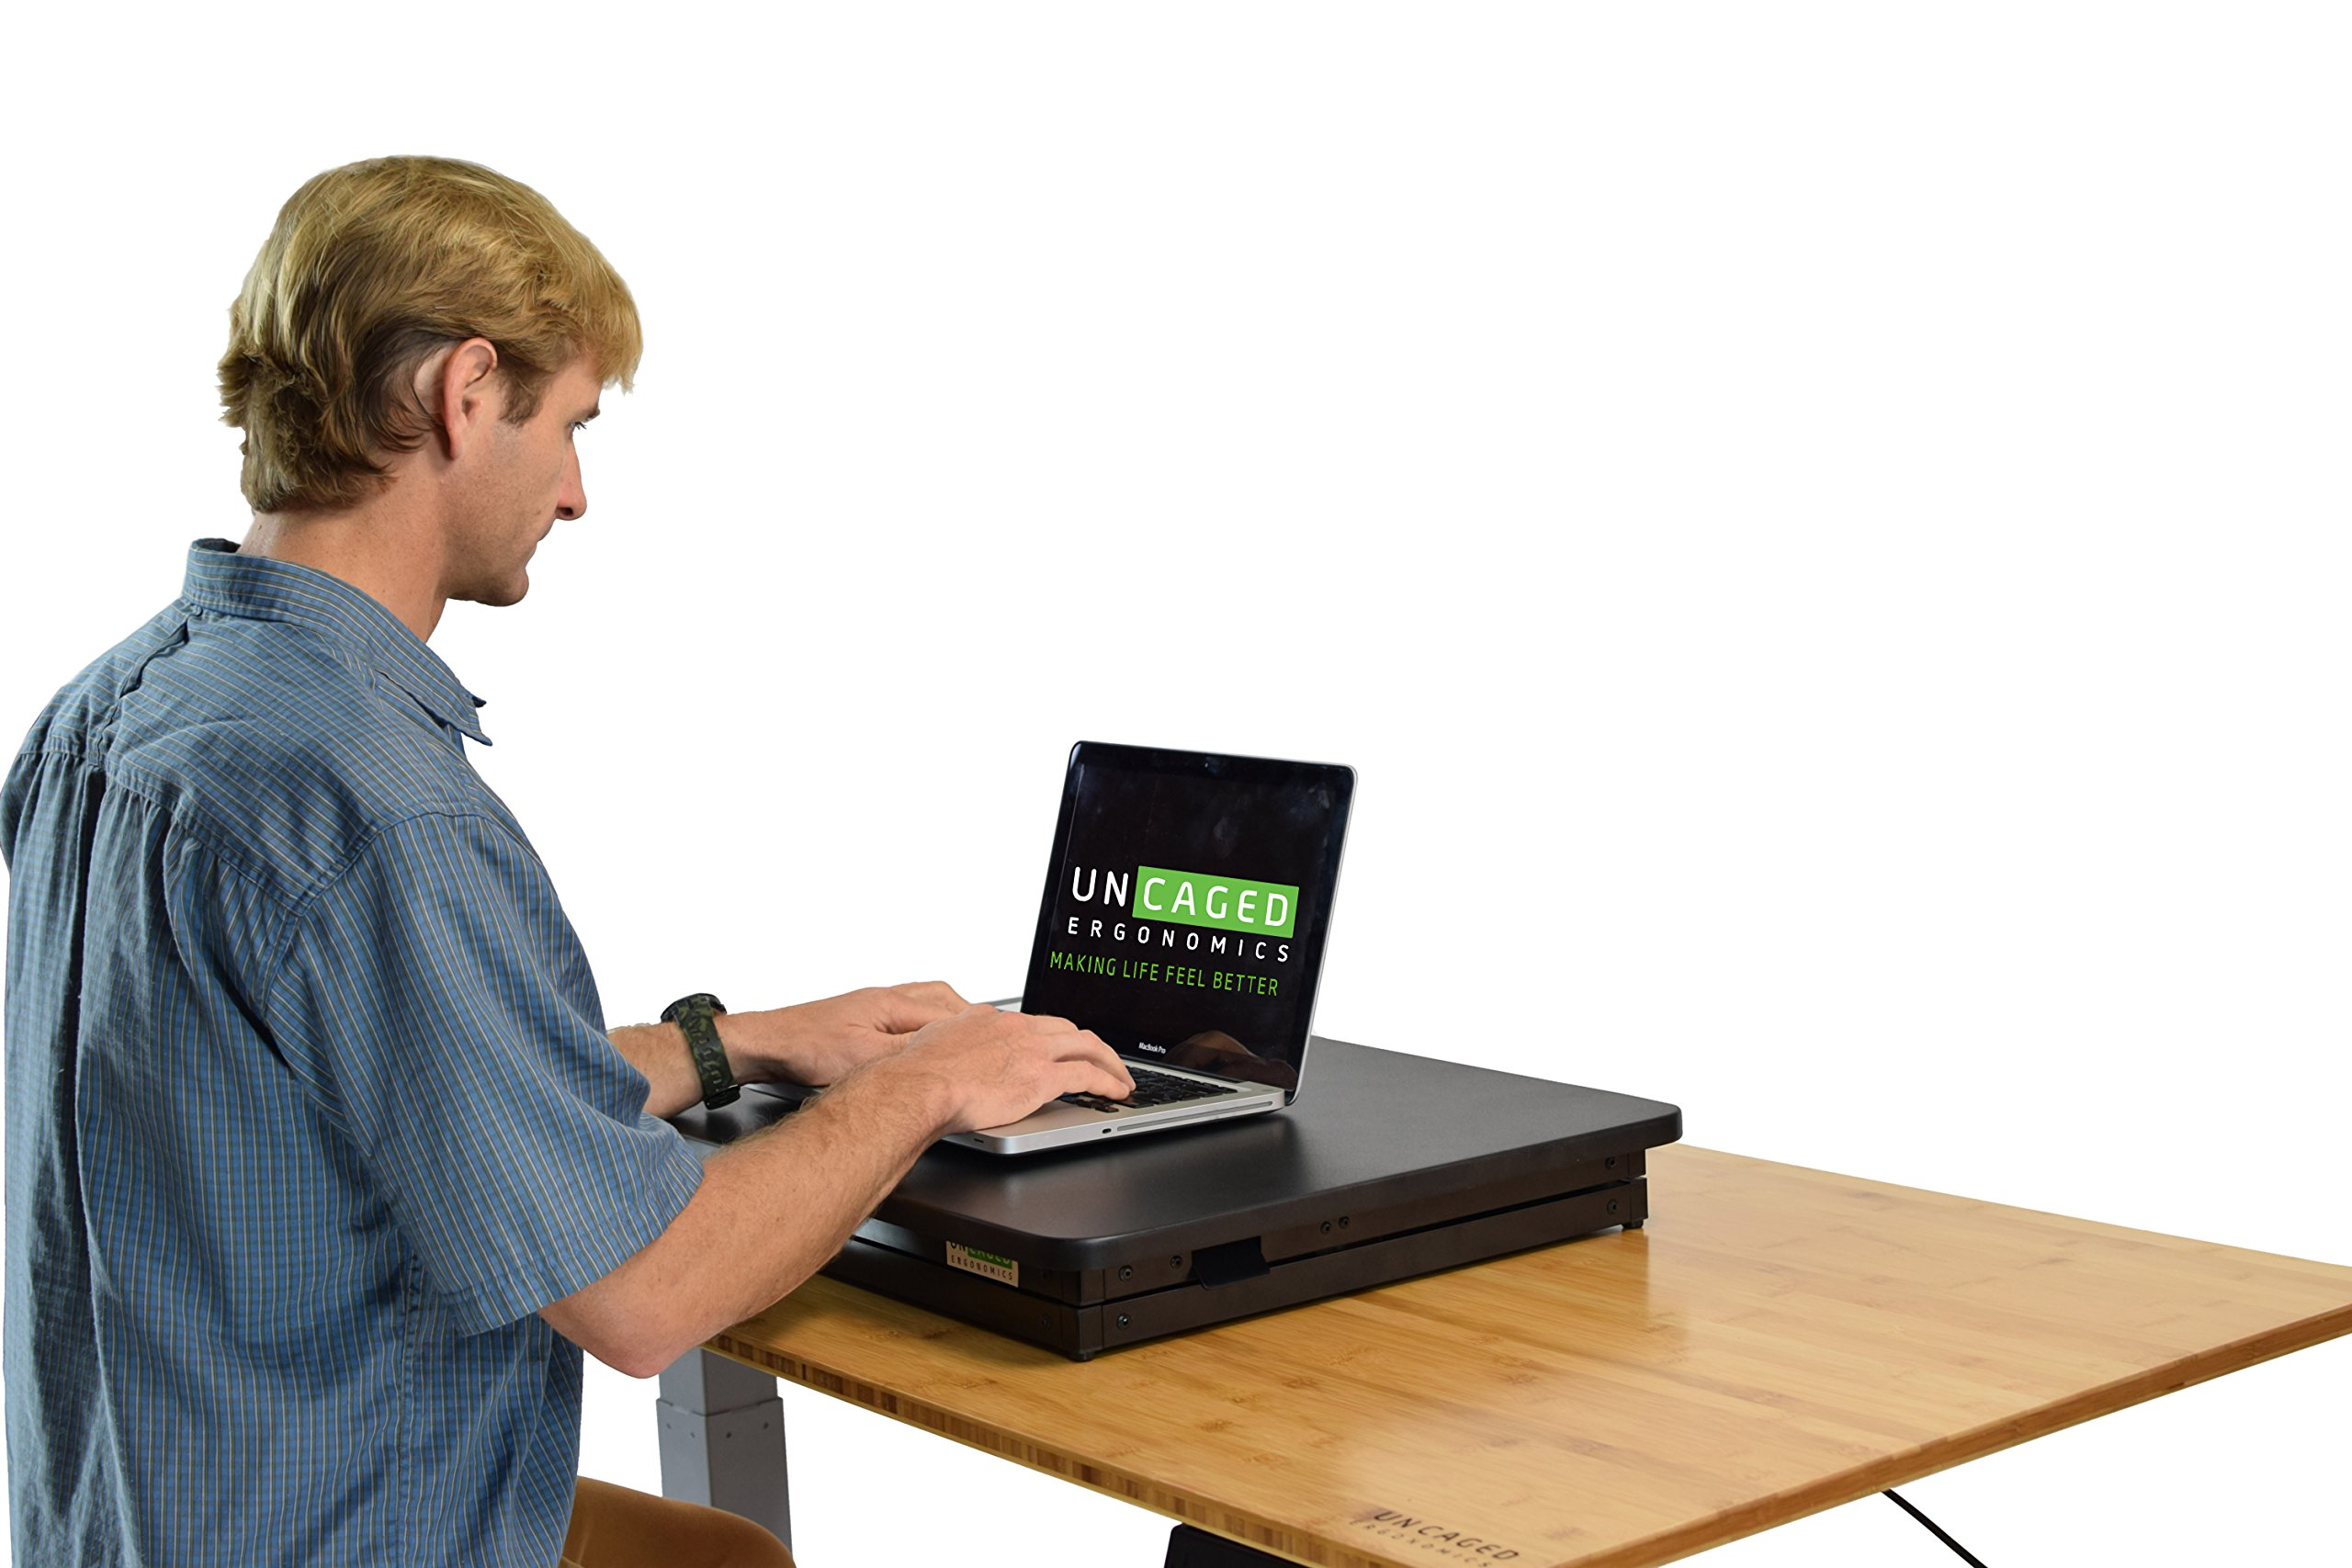 CHANGEdesk Mini Small Adjustable Height Standing Desk Converter for Laptop MacBook Single Monitor Desktop Computer Portable Lightweight Ergonomic sit Stand up Corner Riser Affordable Compact Tabletop by Uncaged Ergonomics (Image #5)